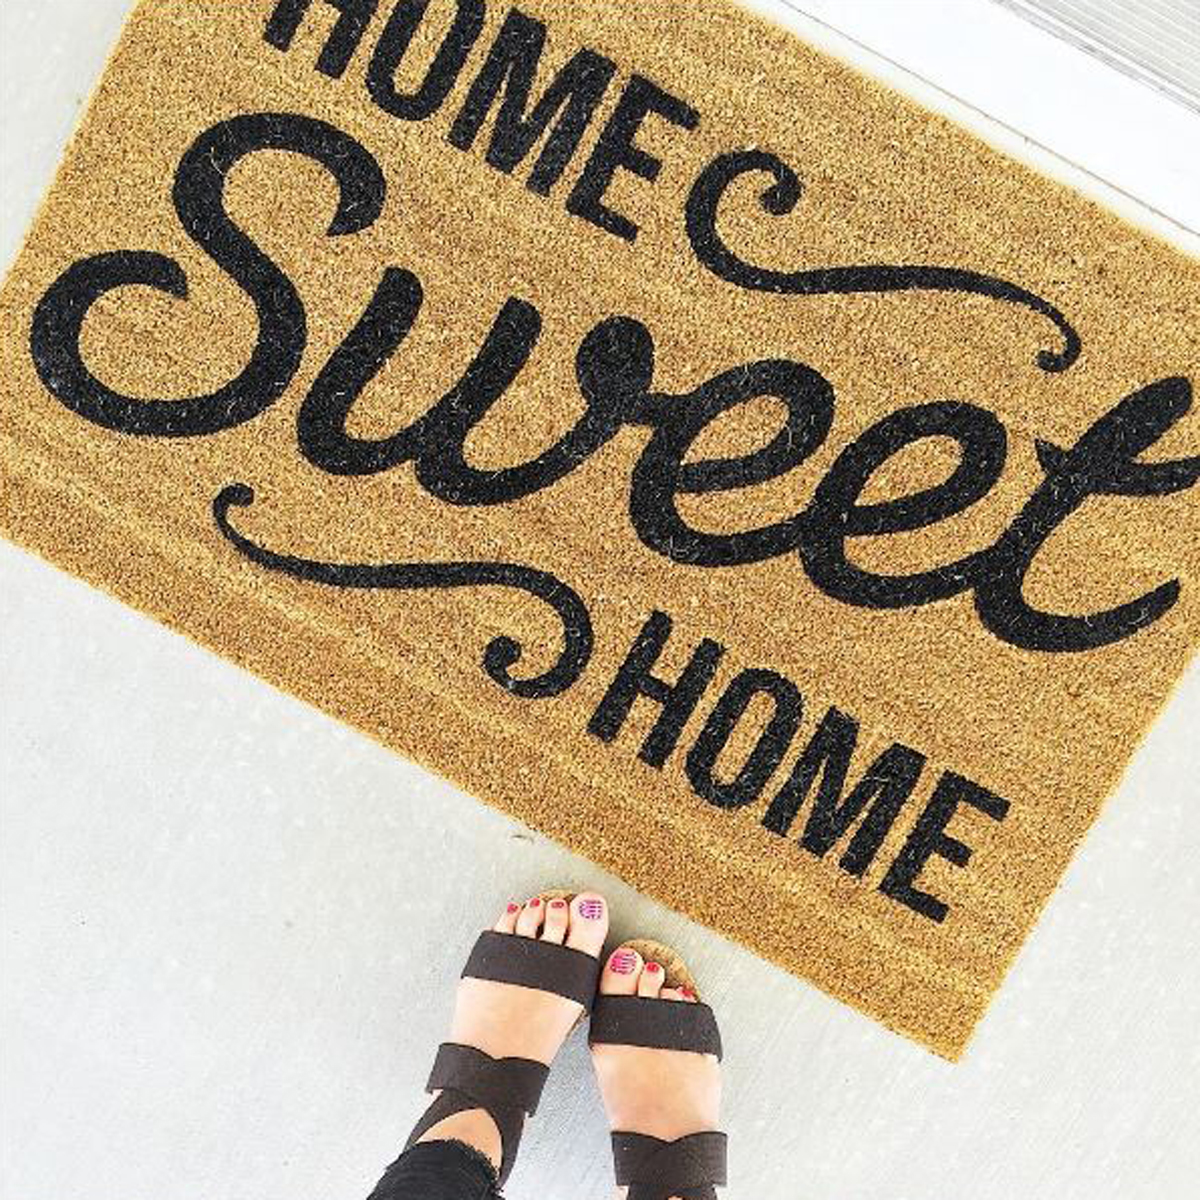 home-sweet-home-door-mat copy